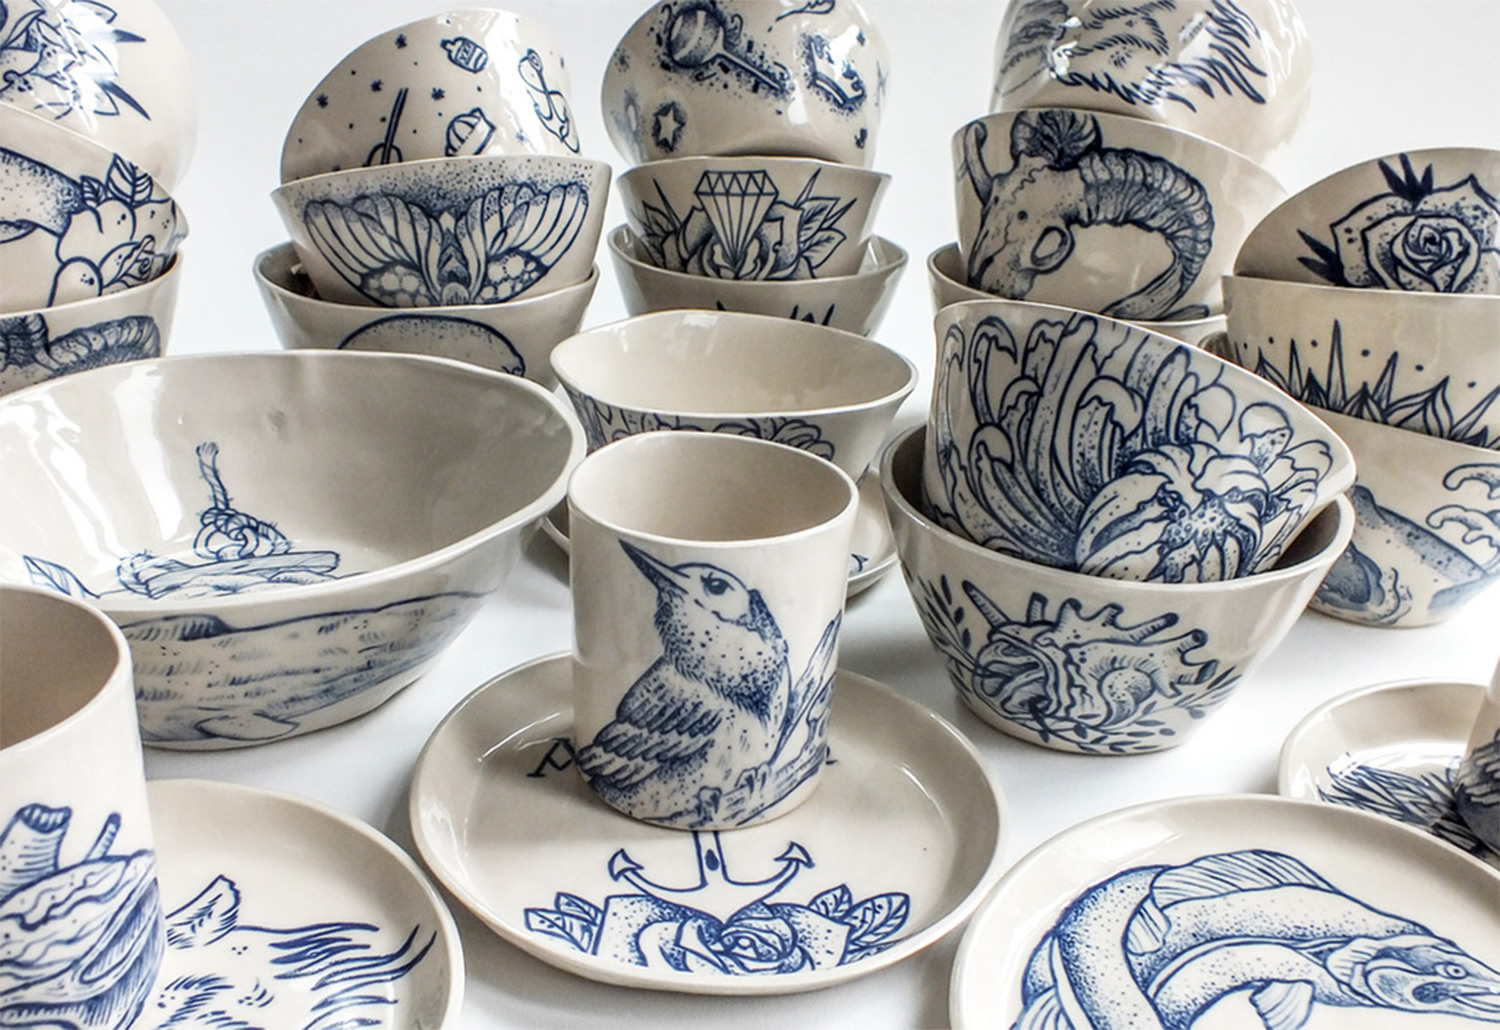 tattooed ceramics, cups, plates. Blue ink on white, Ceramics by Antikapratika